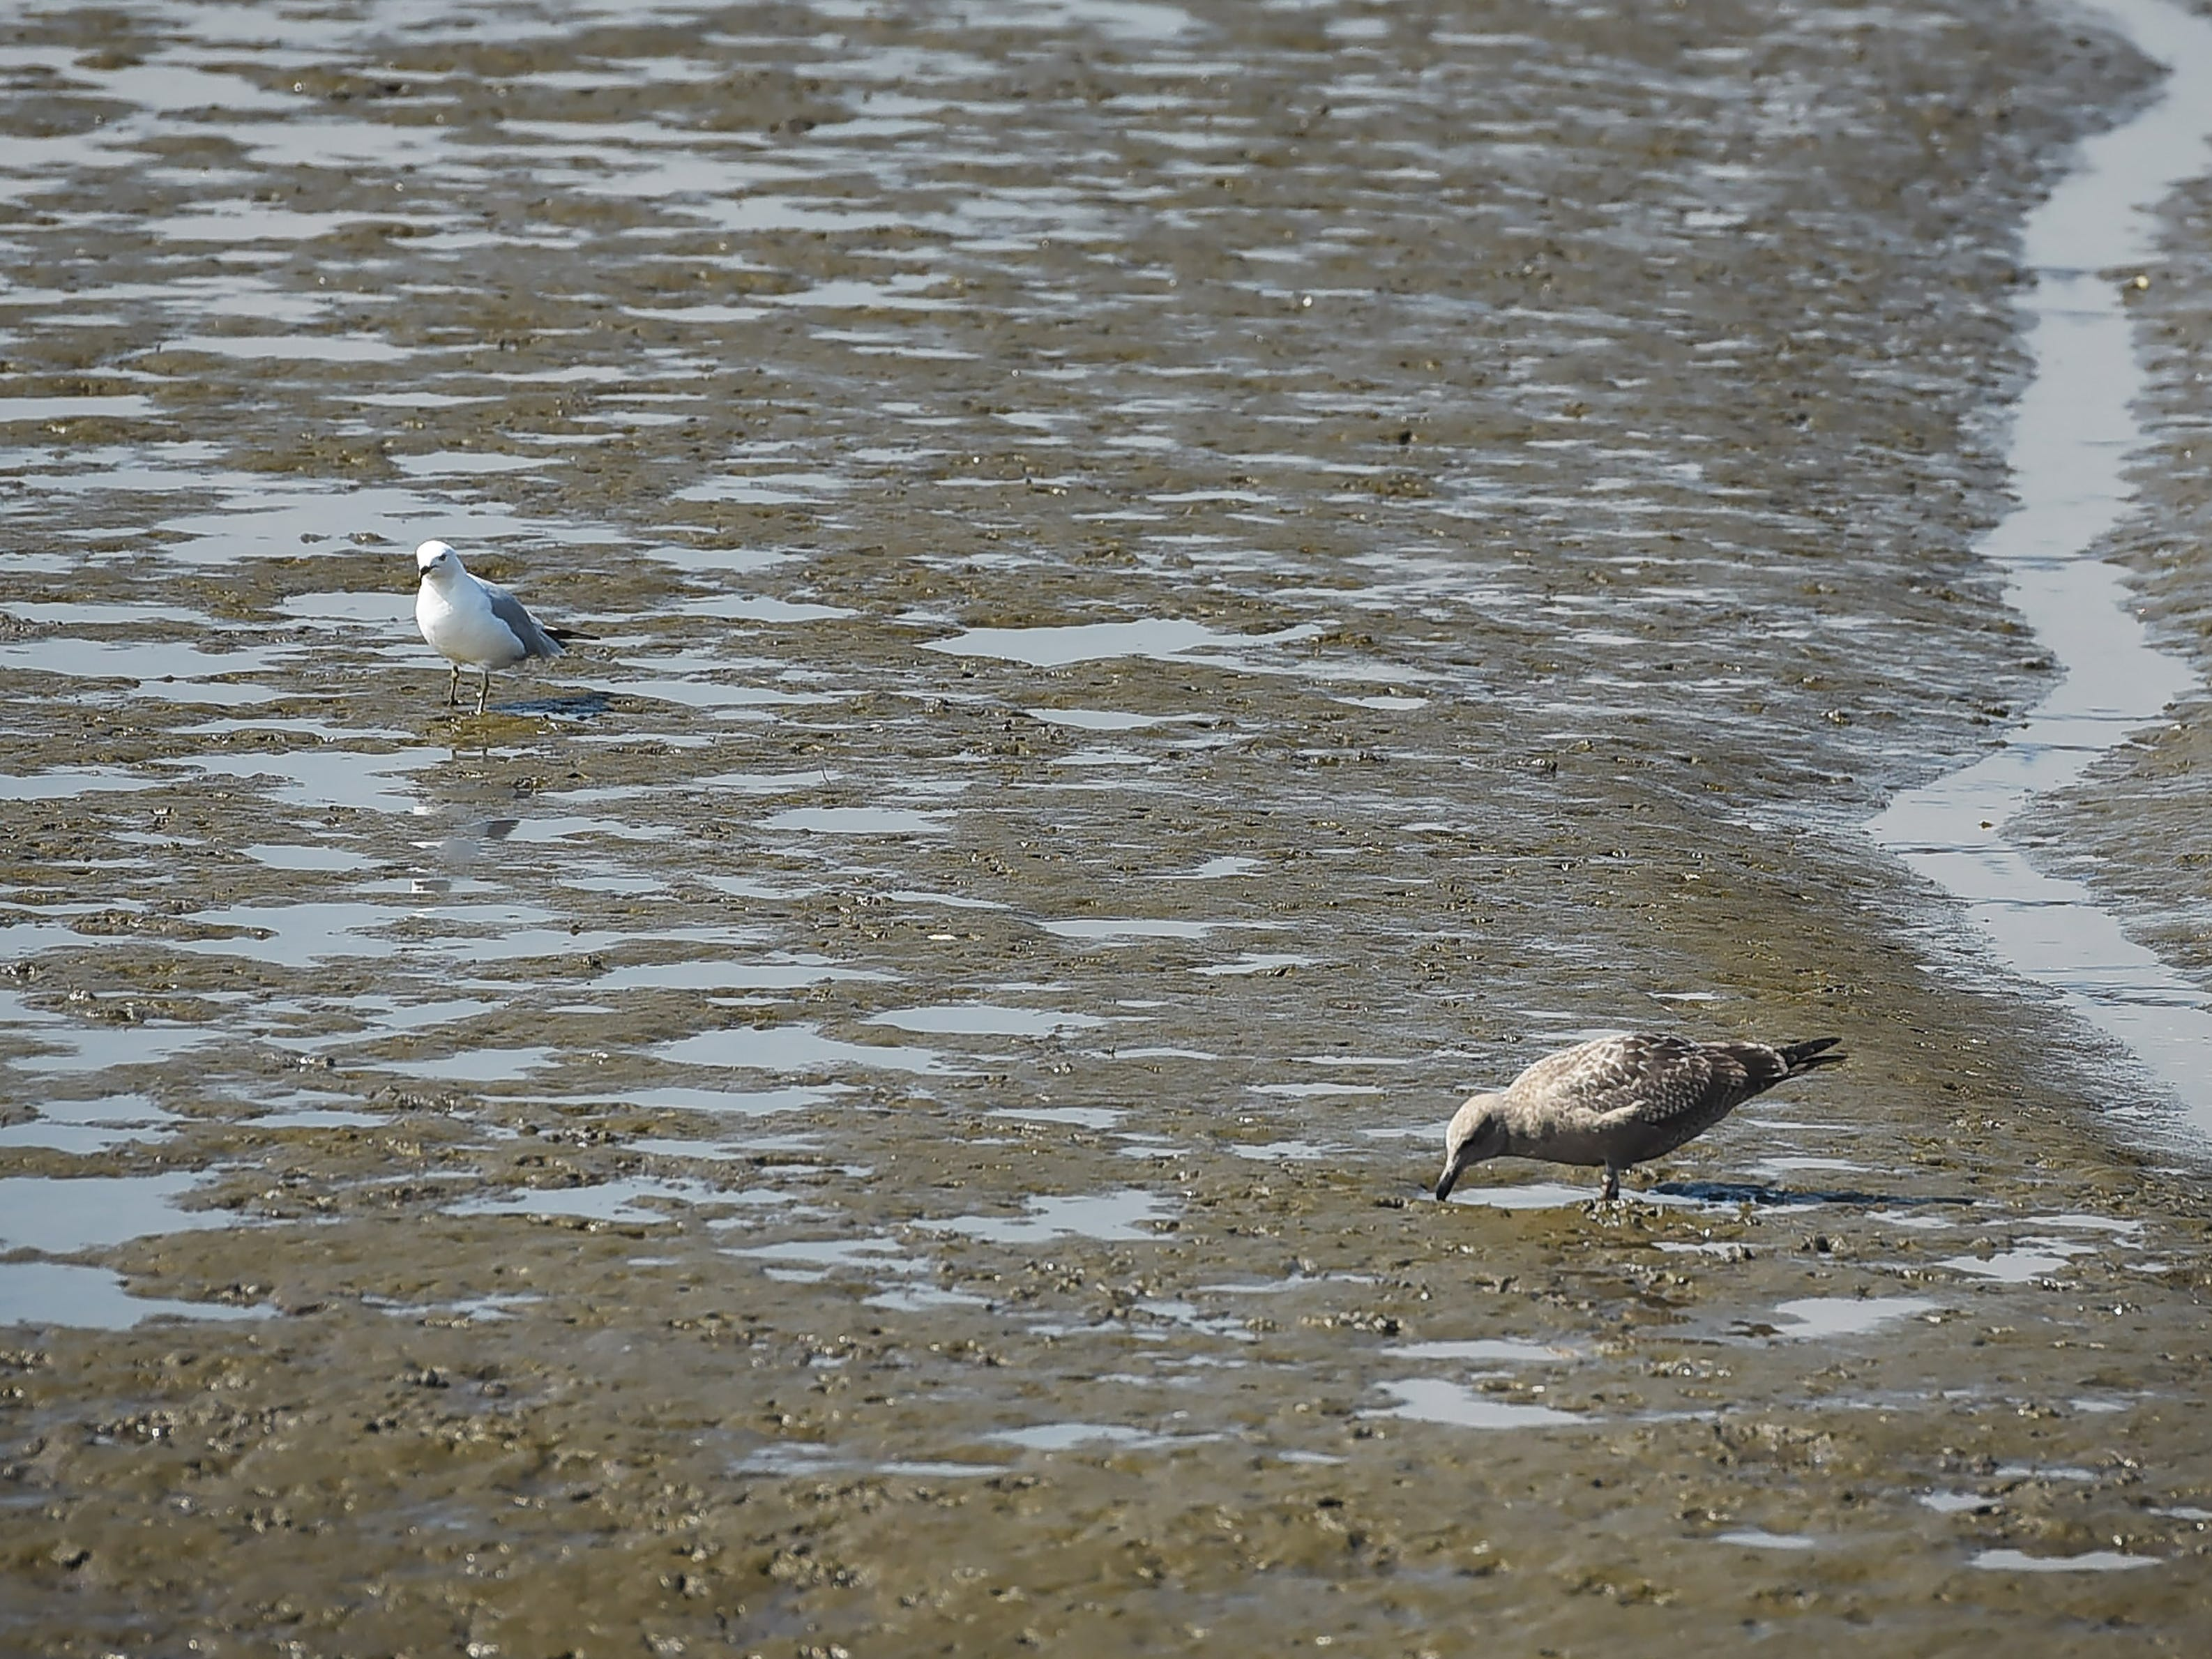 Birds look for food in the mud at the Saw Mill Creek area at Dekorte Park of the Meadowlands Environment Center in Lyndhurst on 09/05/18.